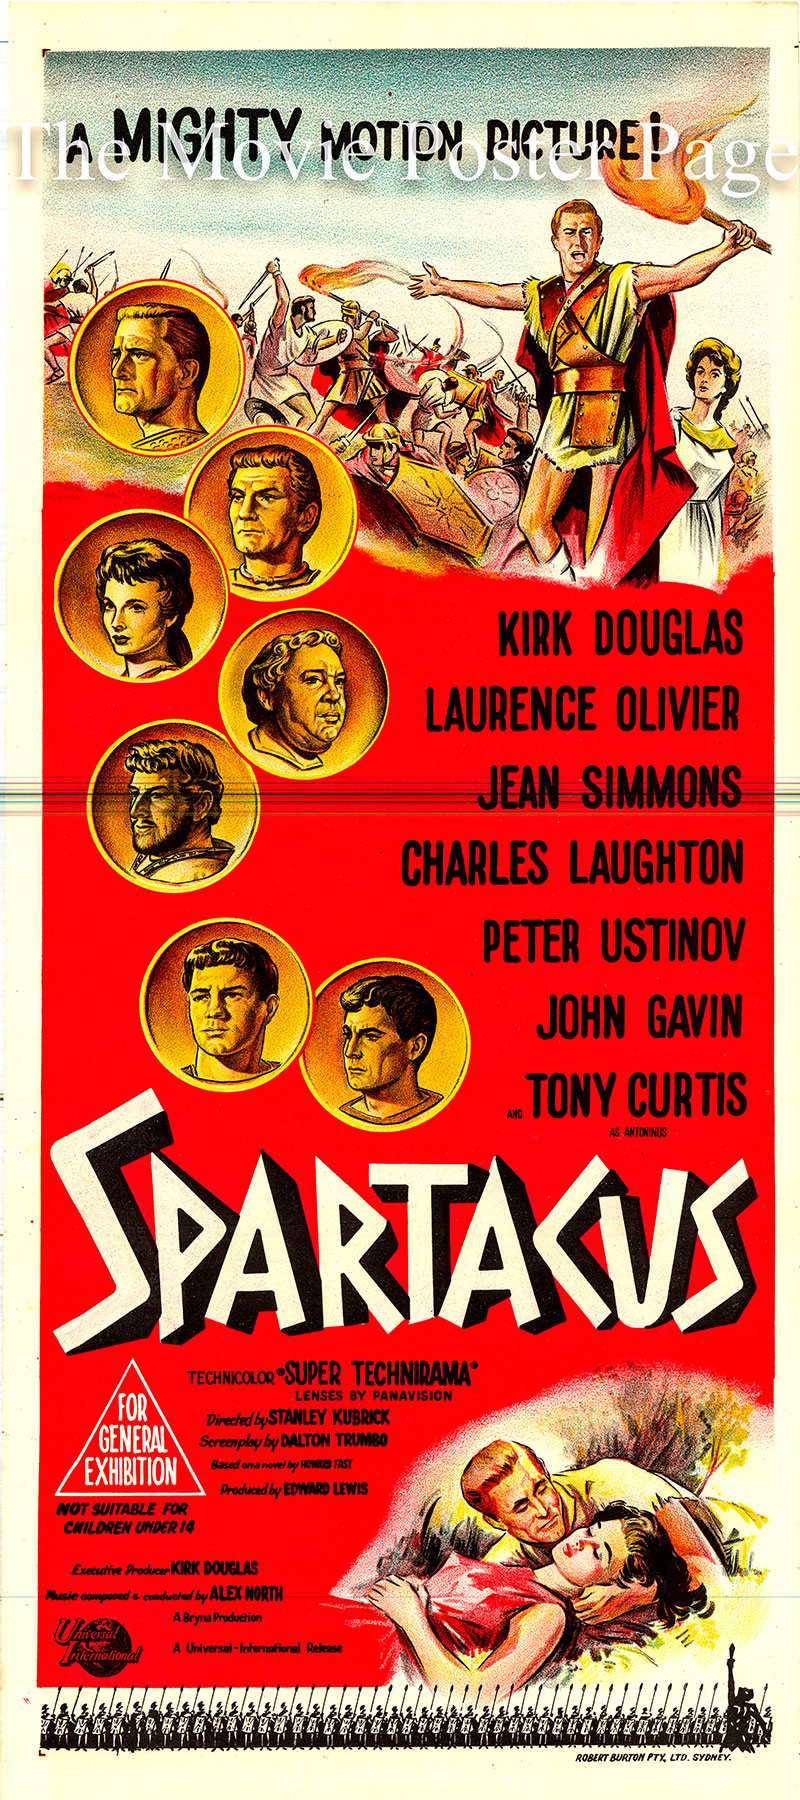 Pictured is an Australian Day Bill poster for the 1960 Stanley Kubrick film Spartacus starring Kirk Douglas as Spartacus.